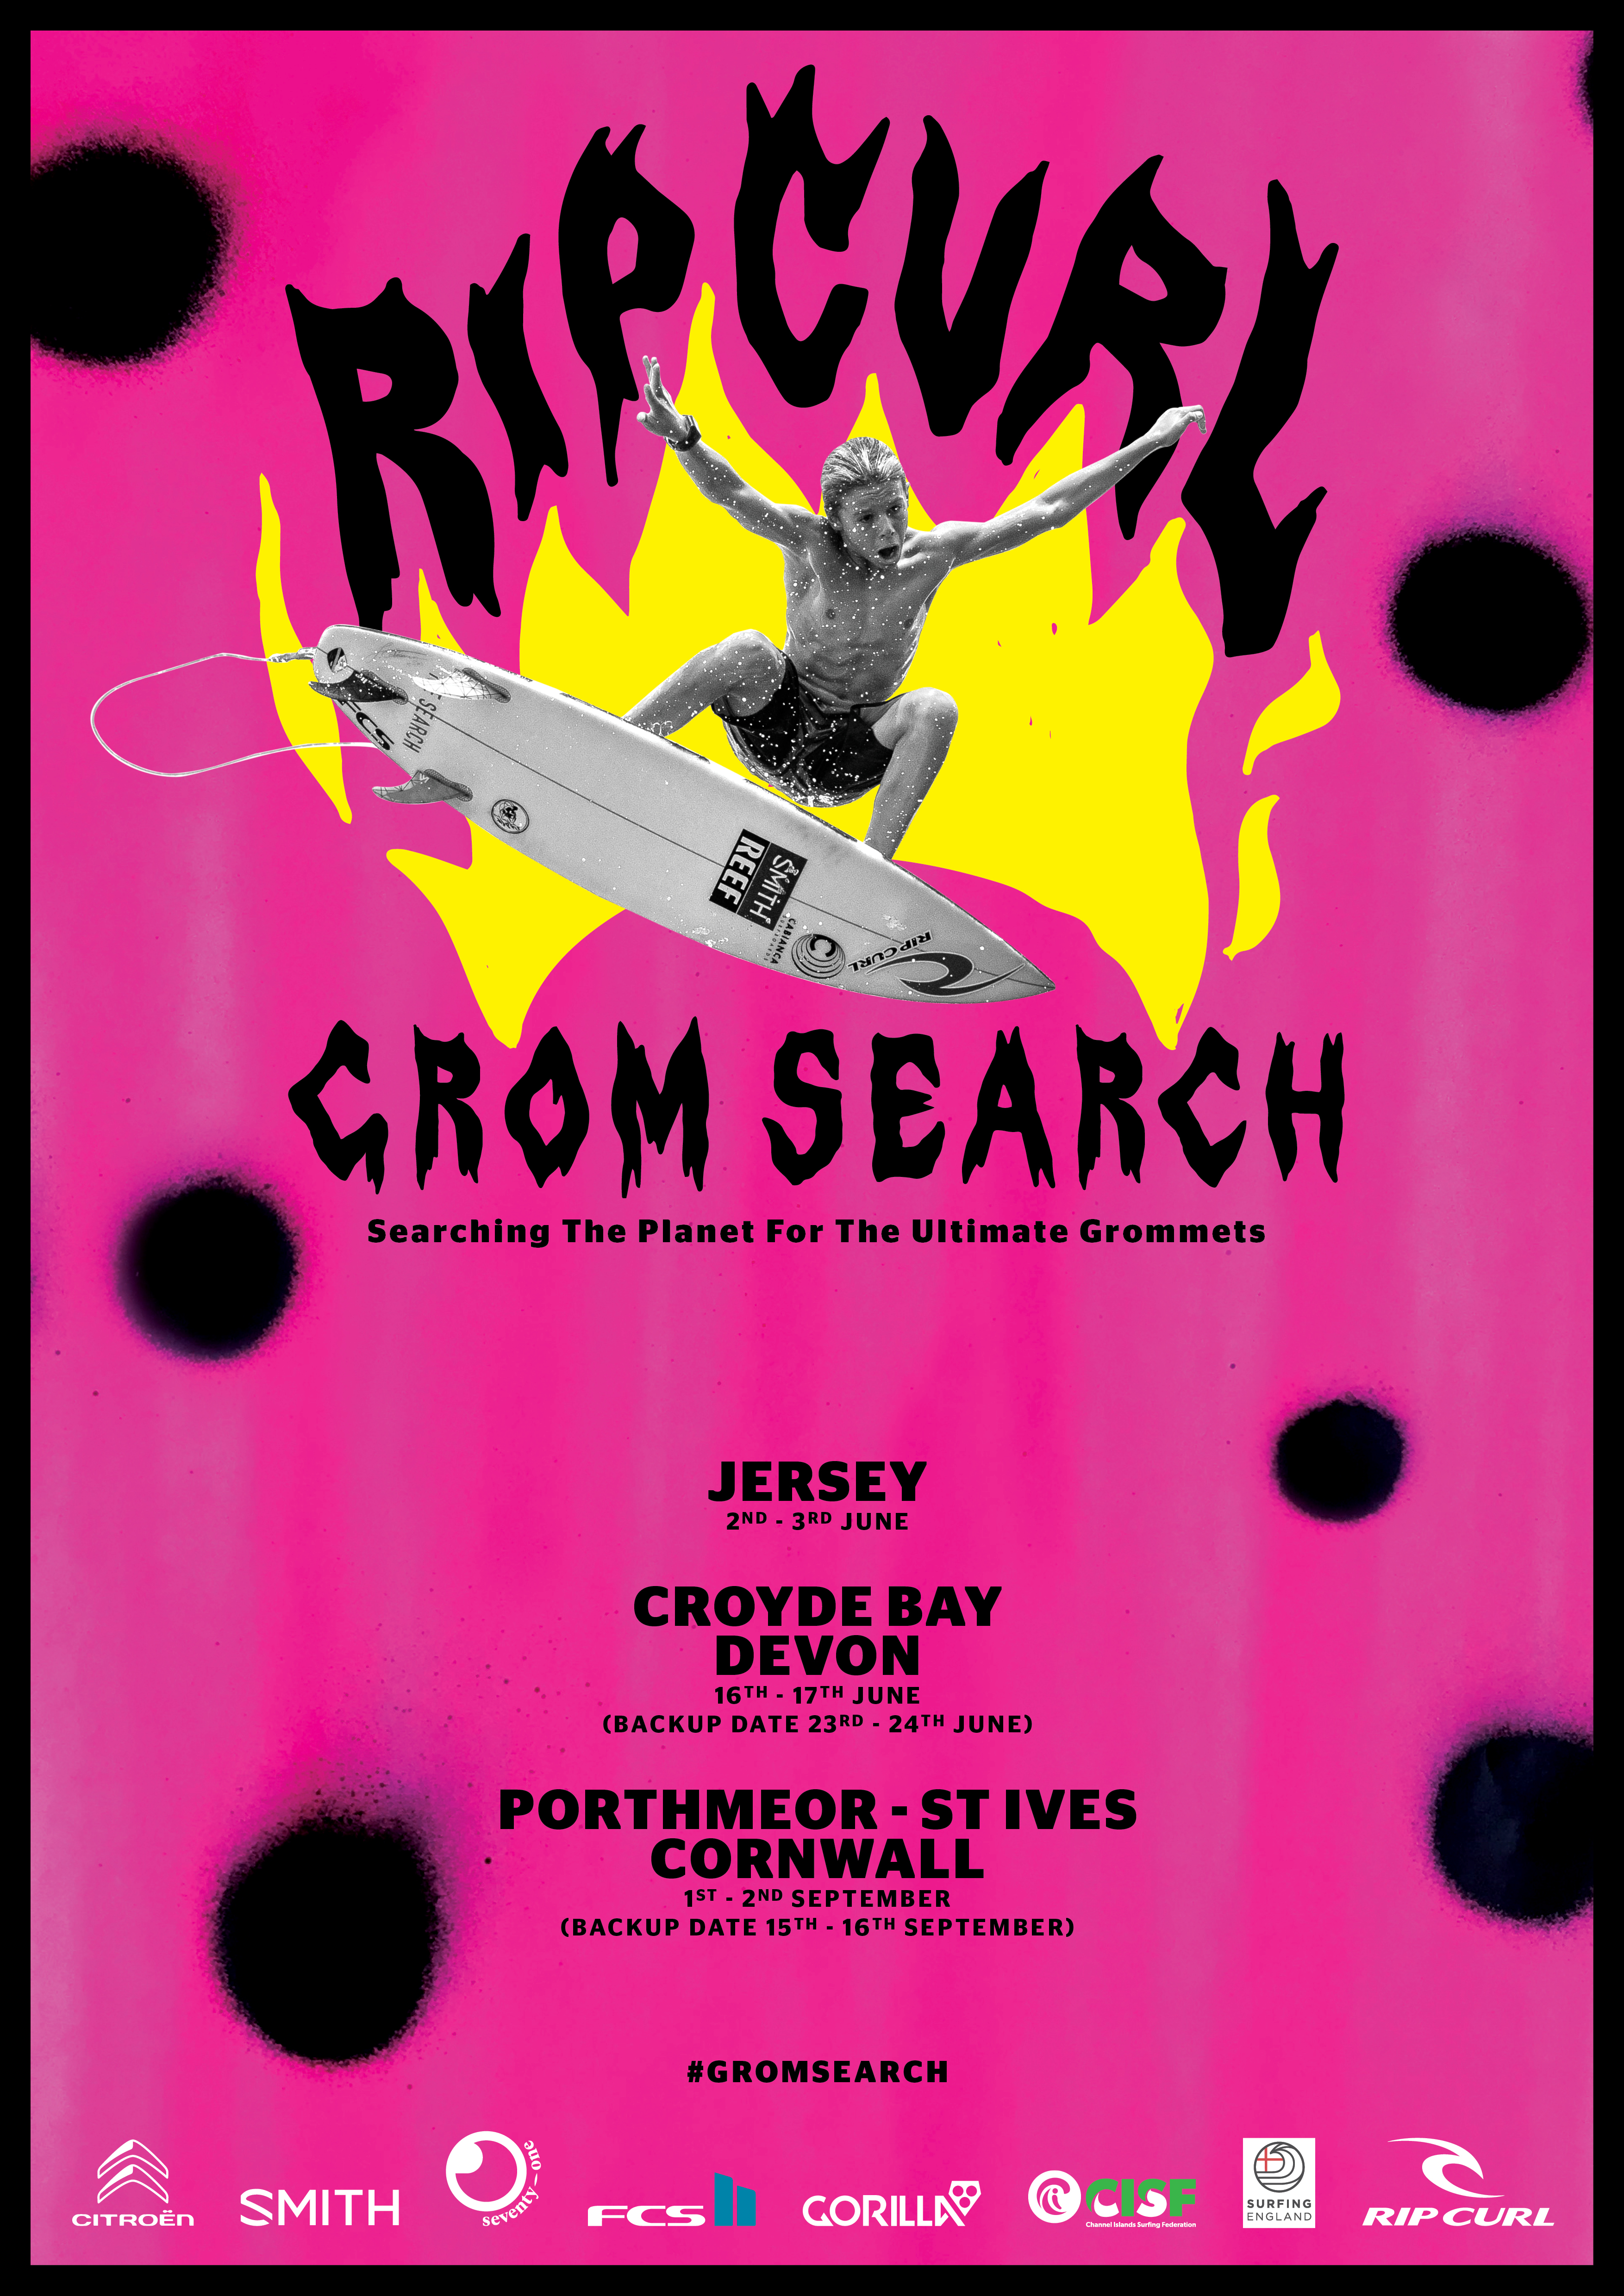 The Grom Search is coming to Jersey.